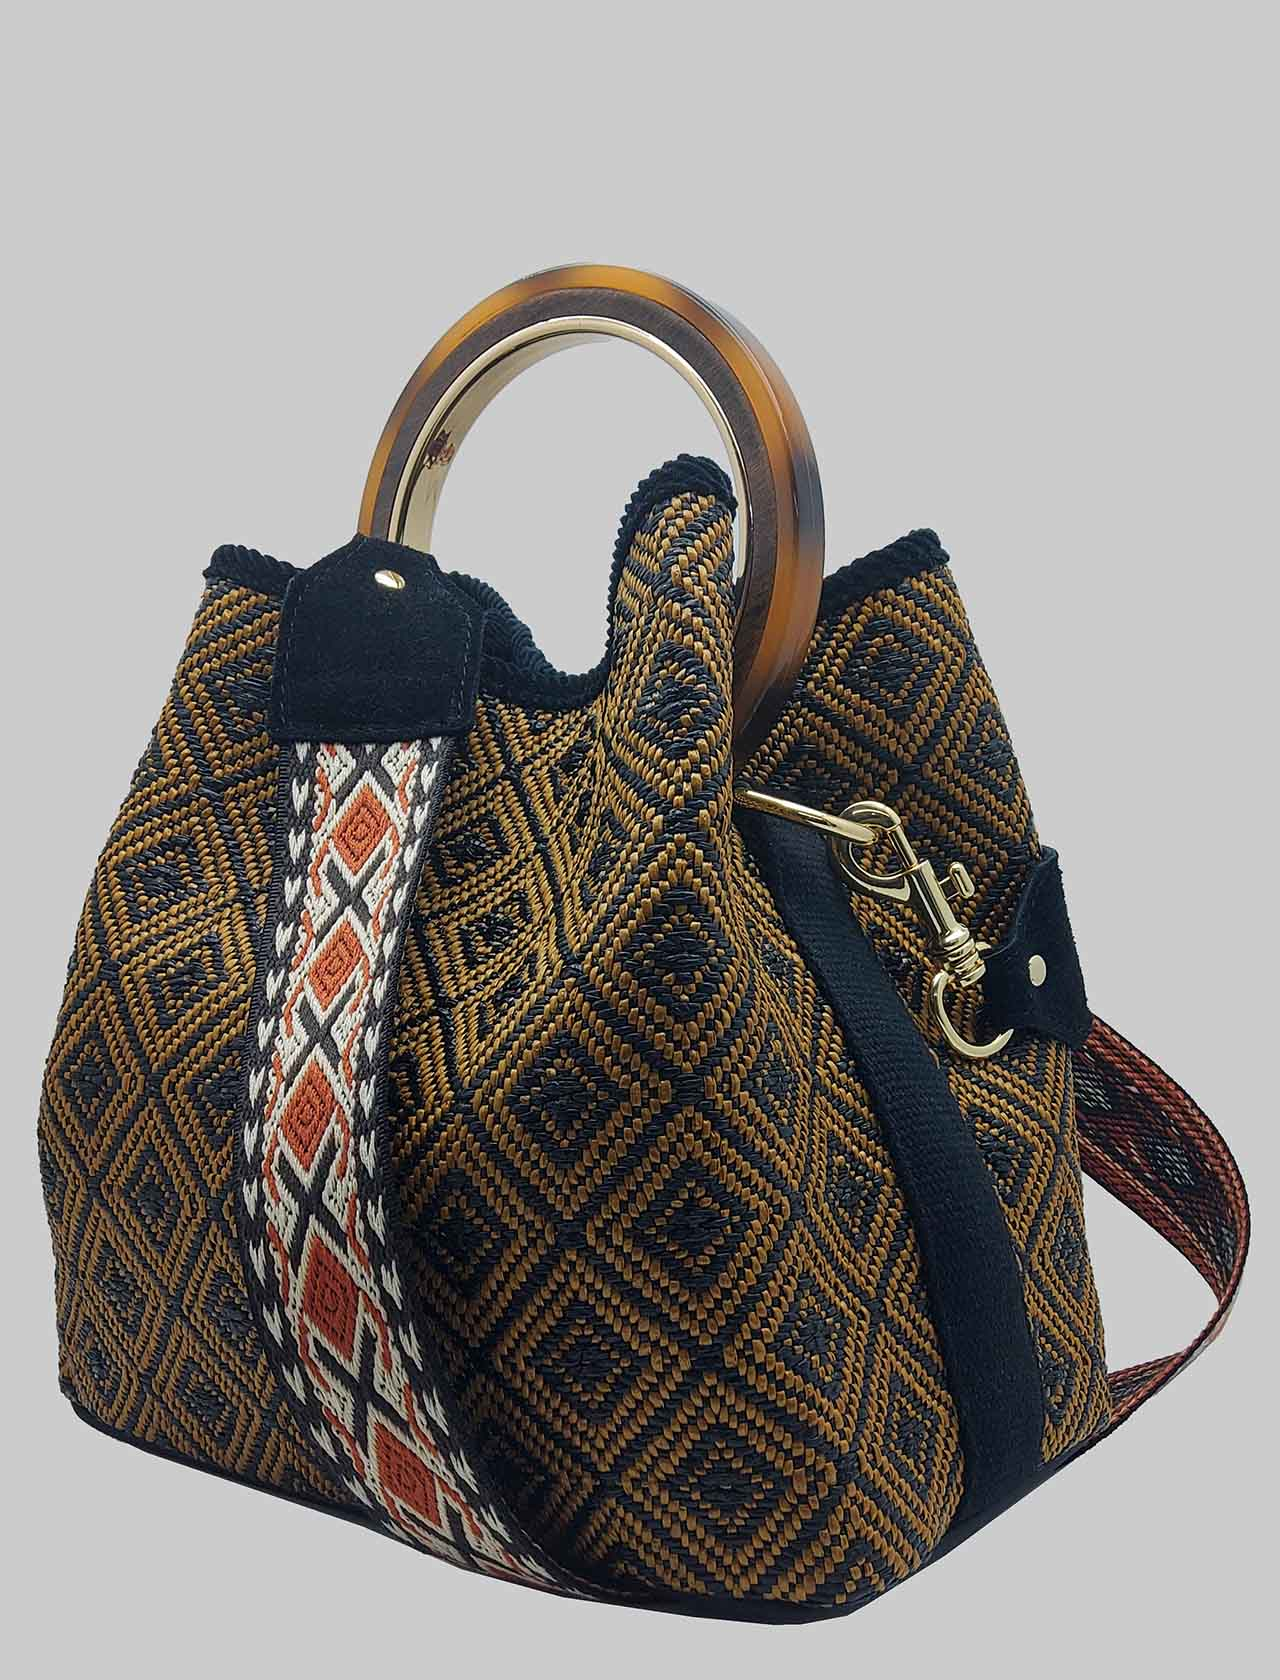 Woman Bucket Bag in Bronze Jacquard Fabric with Bone Handle and Patterned Shoulder Strap Via Mail Bag | Bags and backpacks | CHECKB02